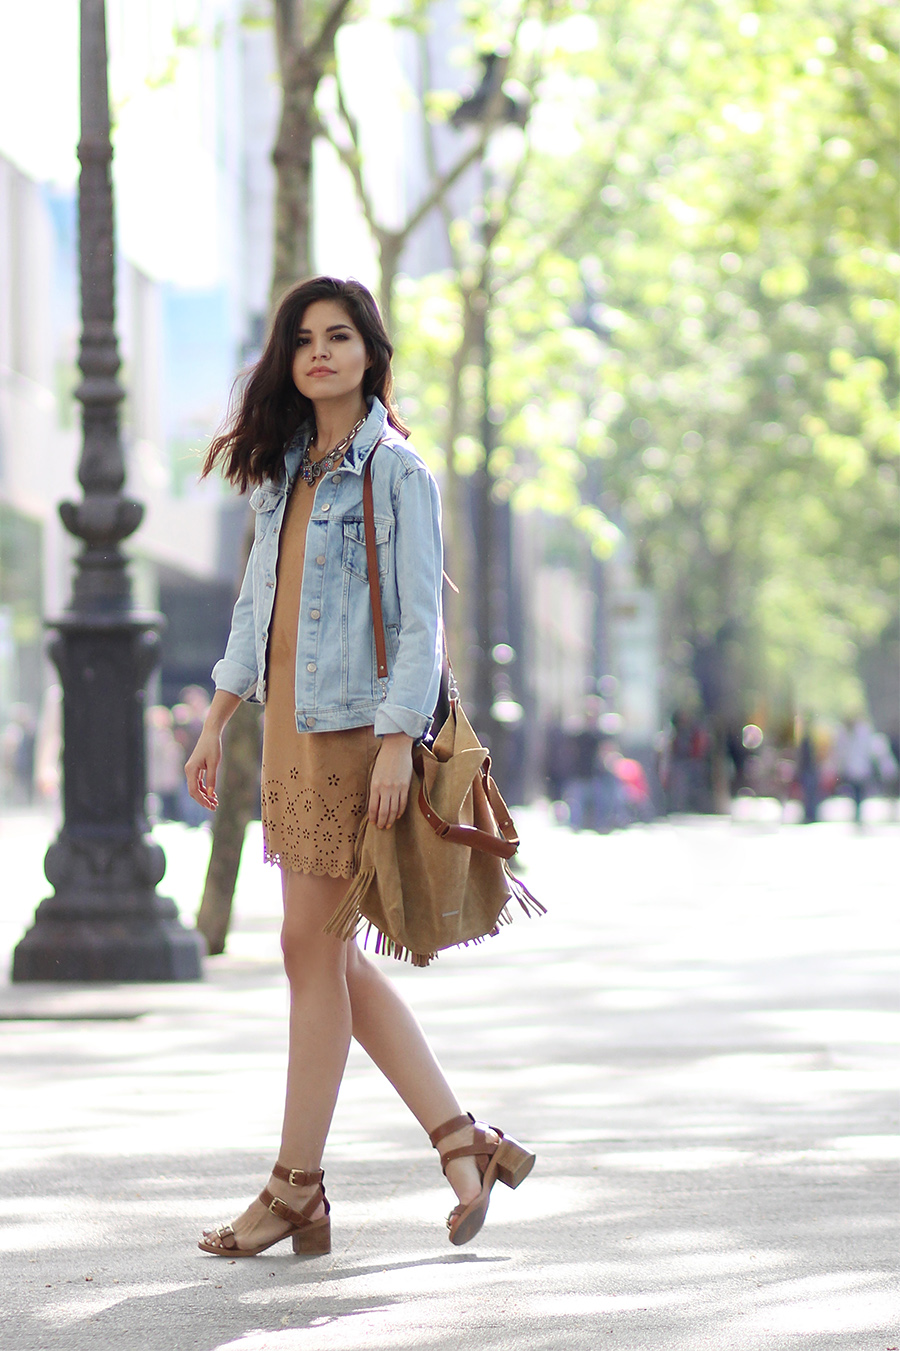 Fashion style Jacket fringe how to wear for woman